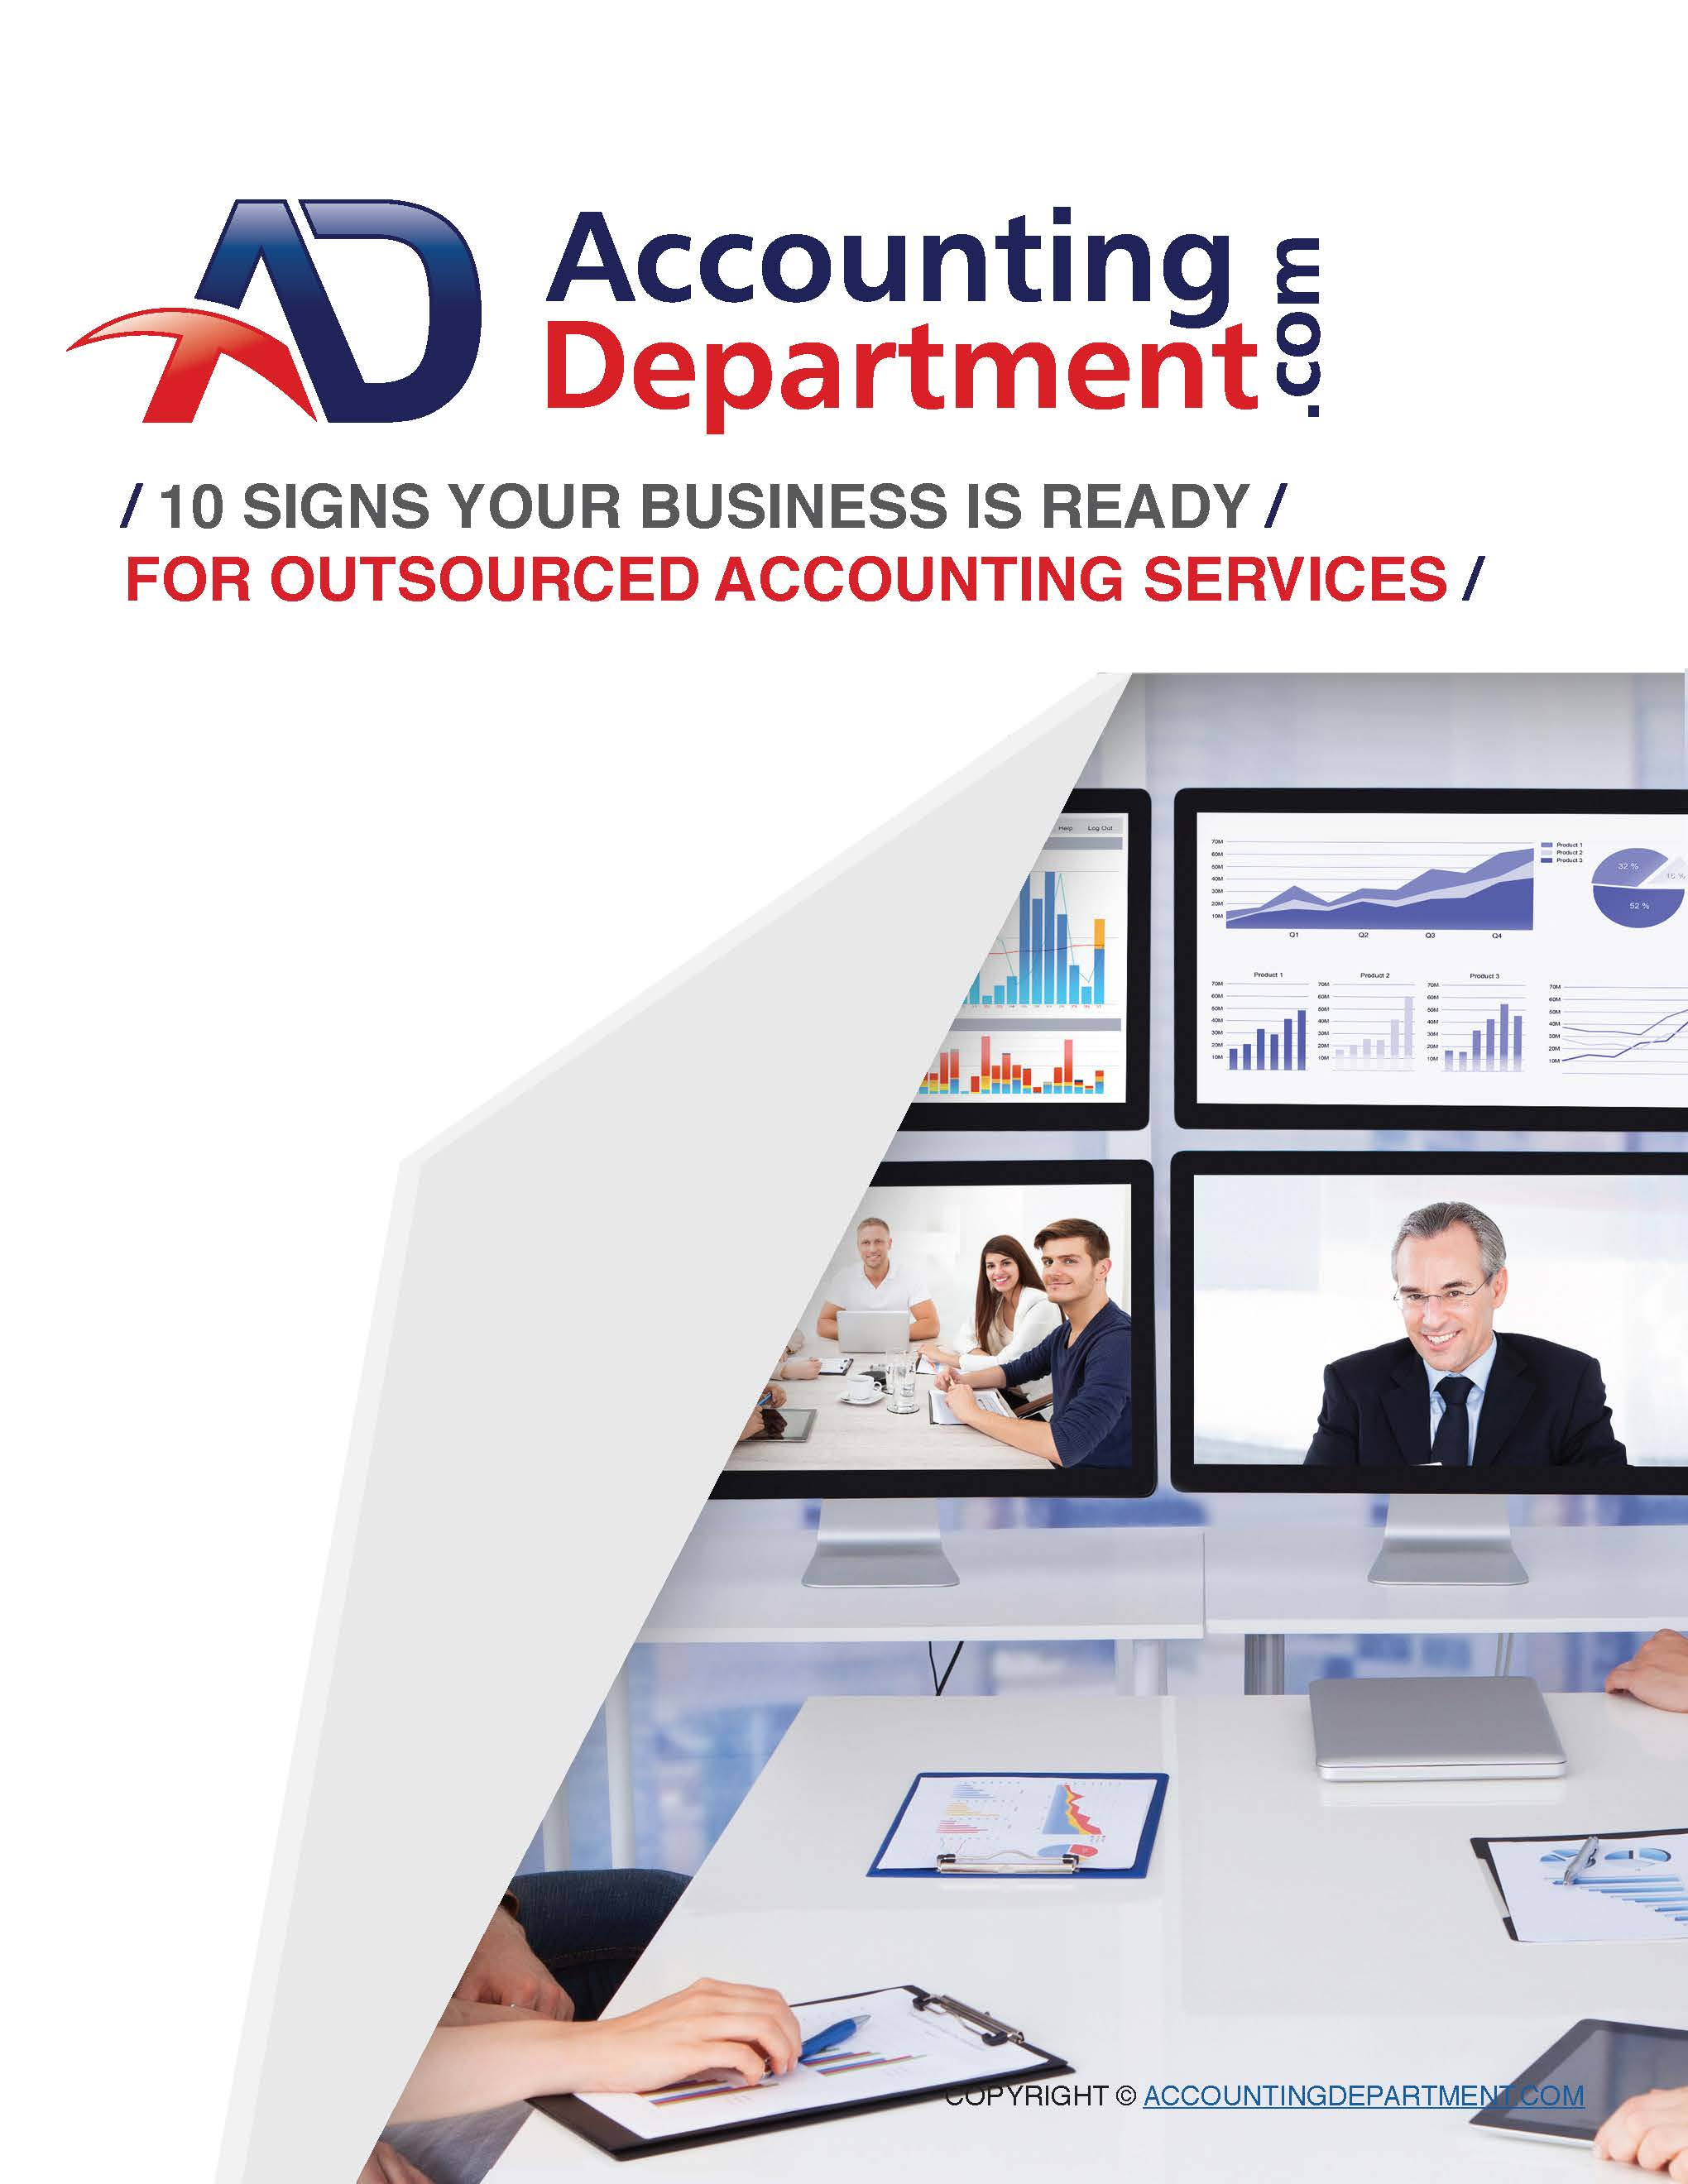 10-signs-your-business-is-ready-for-outsourced-accounting-services_Page_1.jpg